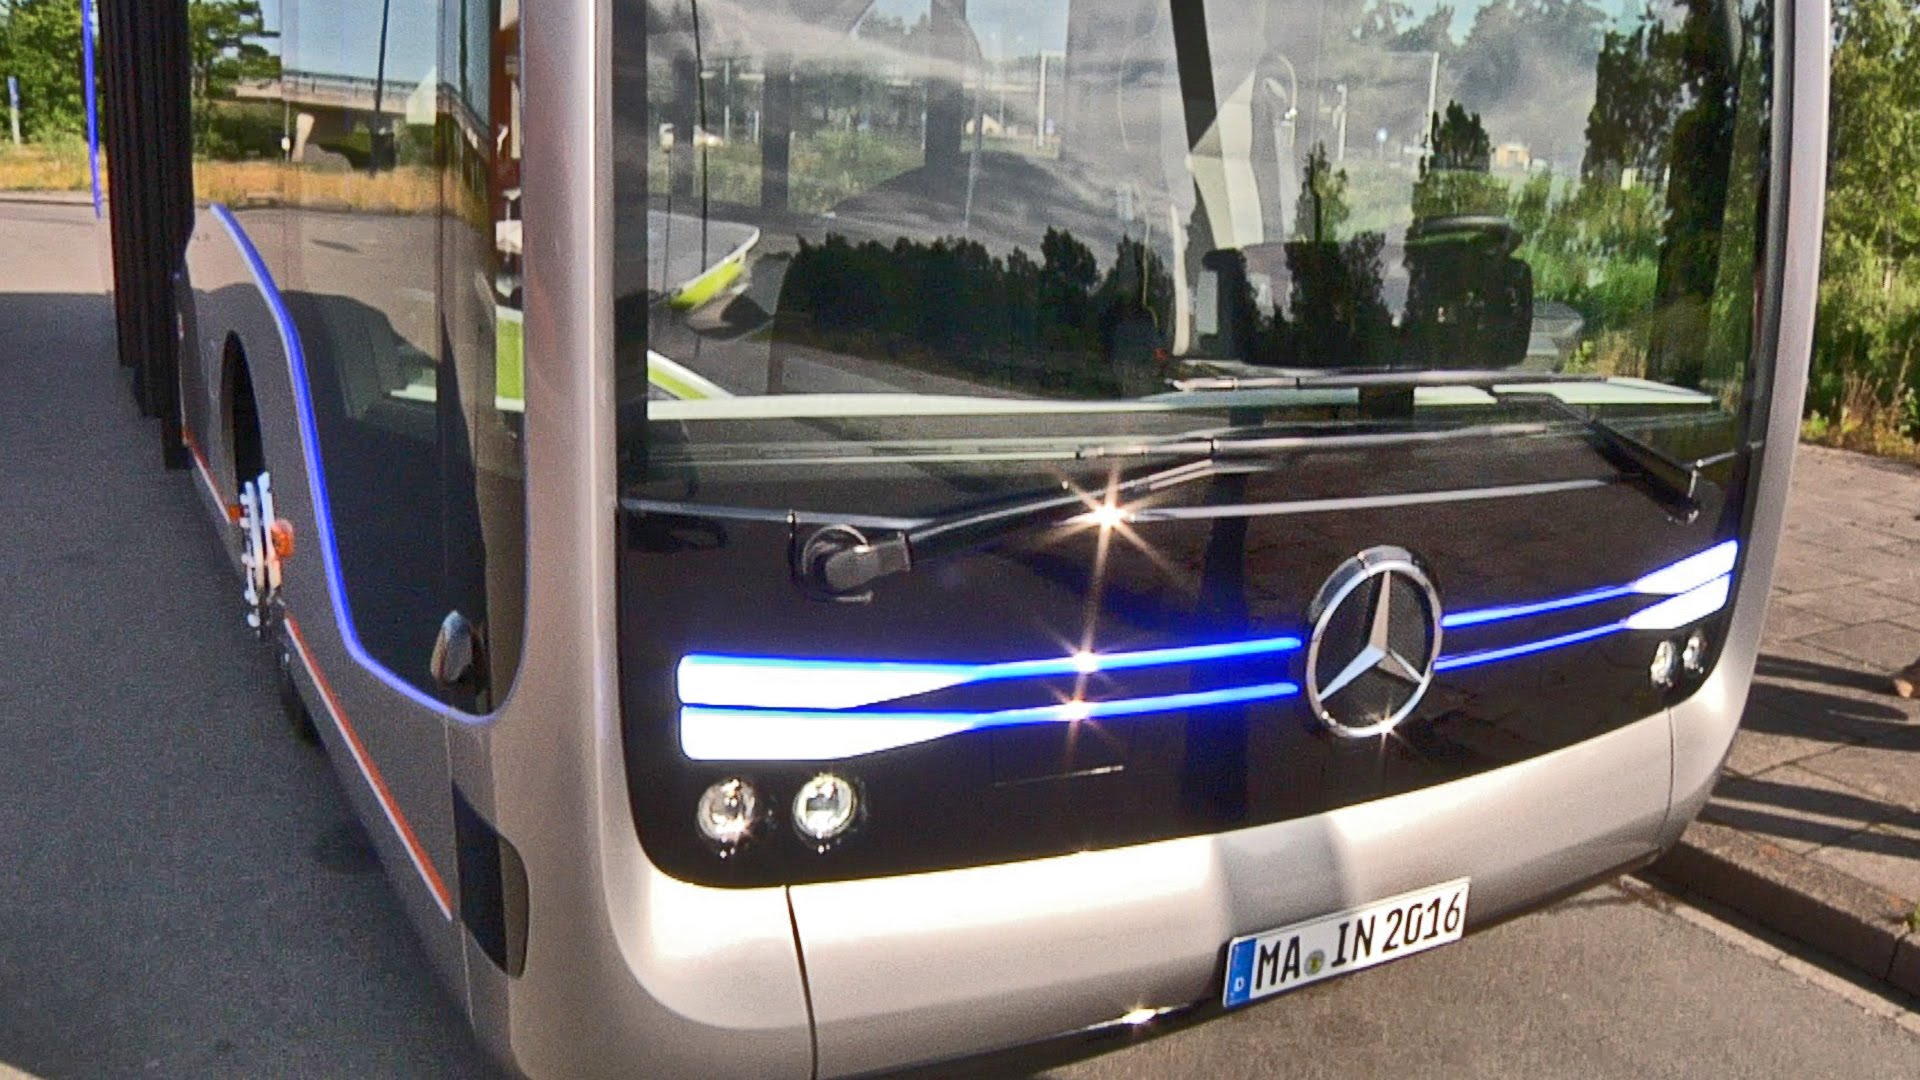 Daimler Buses Adds Brake Assist with Pedestrian Recognition